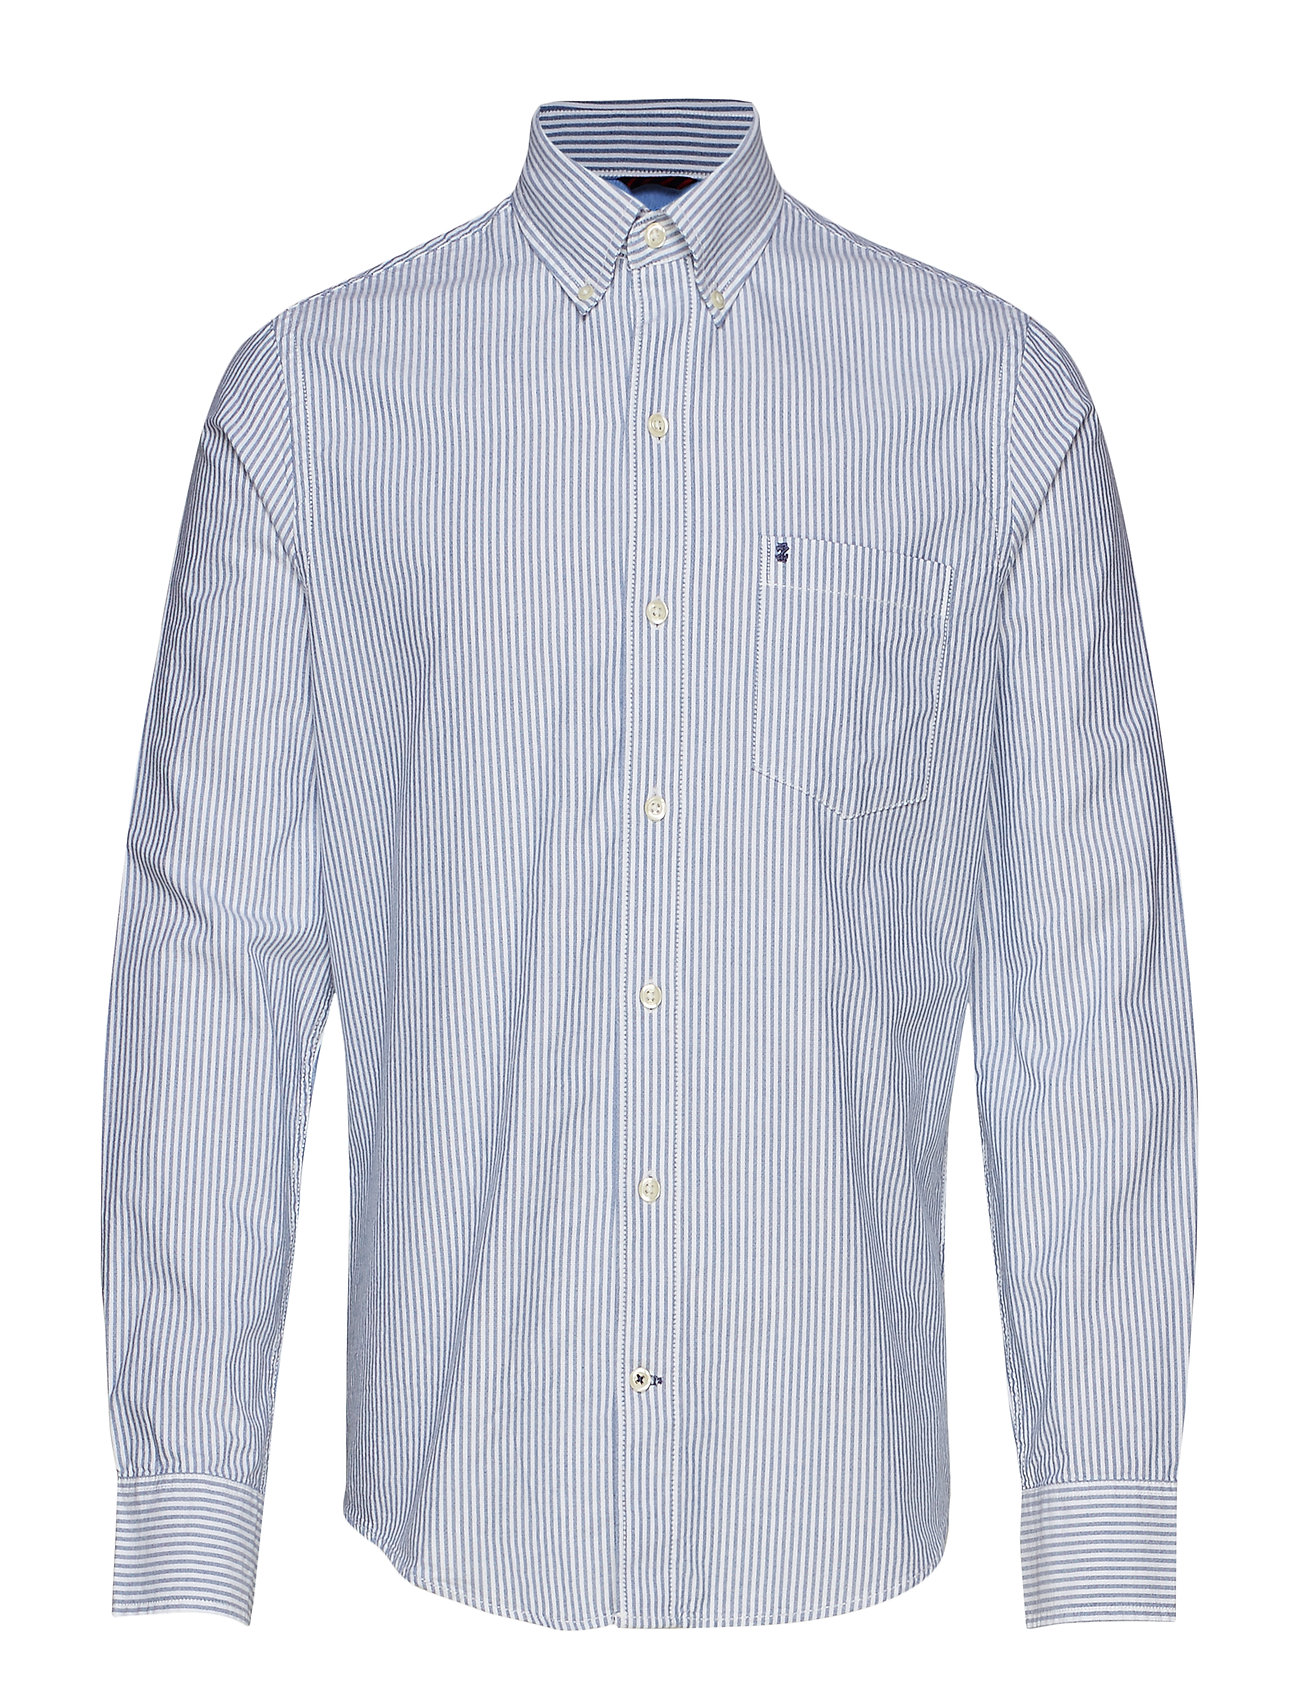 IZOD OXFORD DOBBY STRIPE BD SHIRT - TRUE BLUE